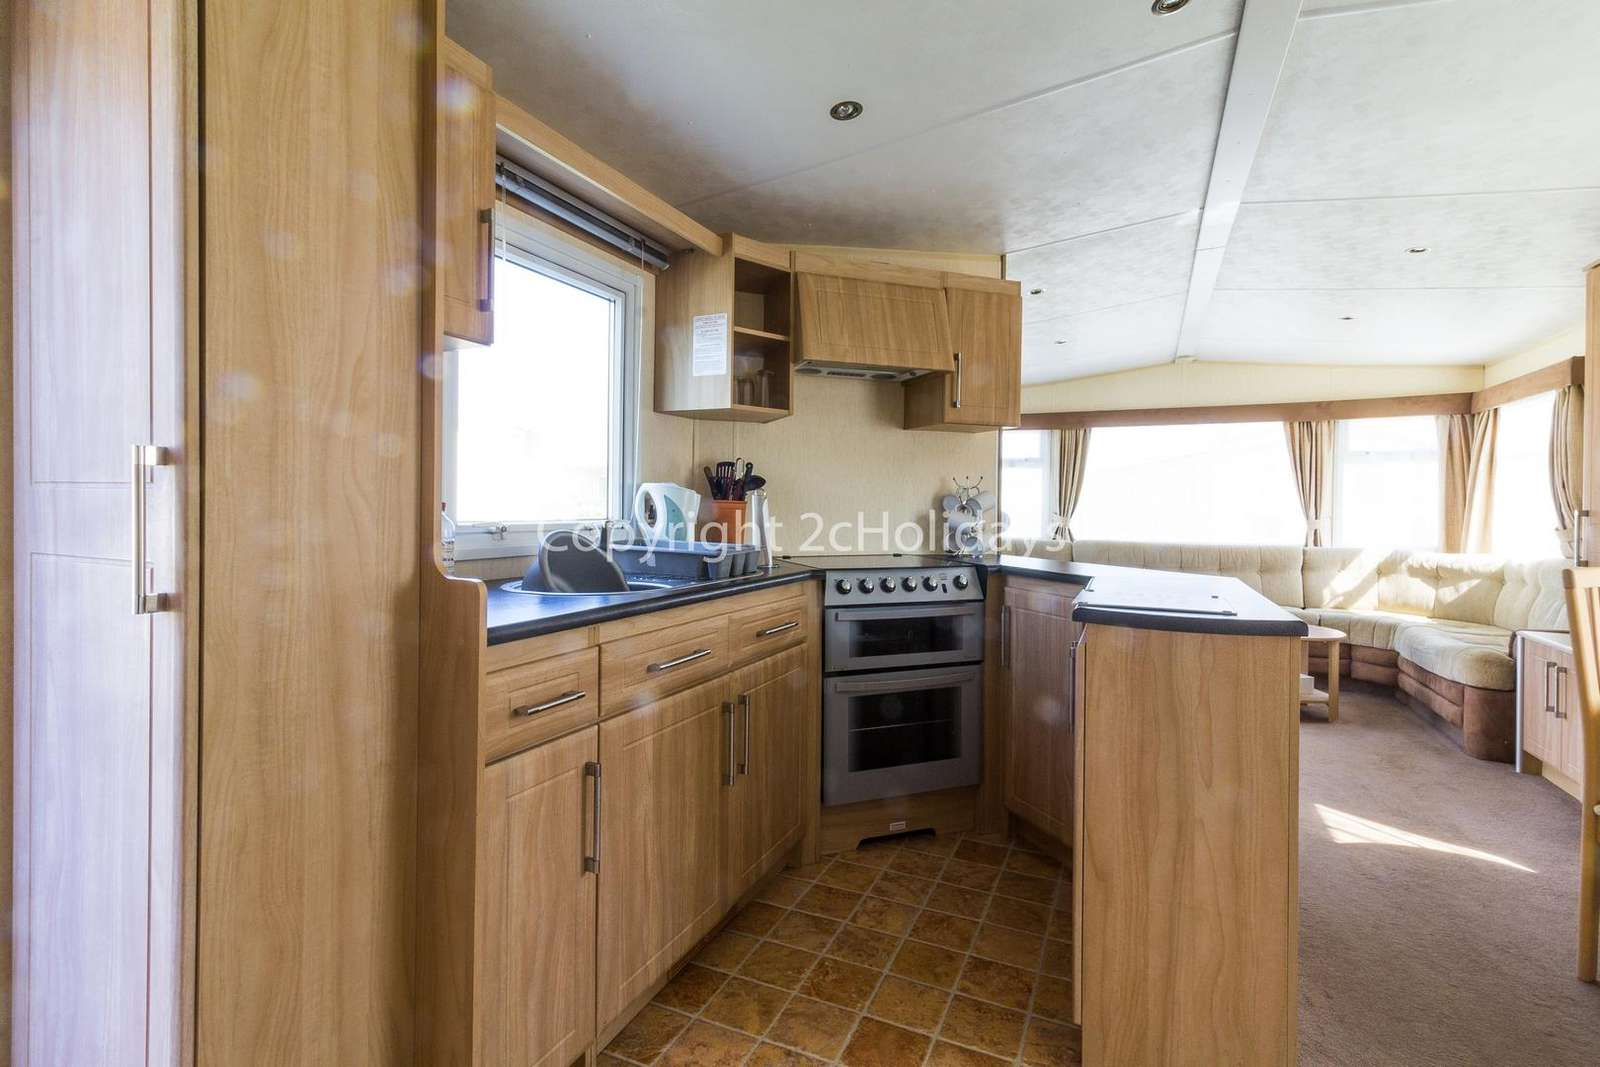 Well equipped kitchen, perfect for self-catering holidays!